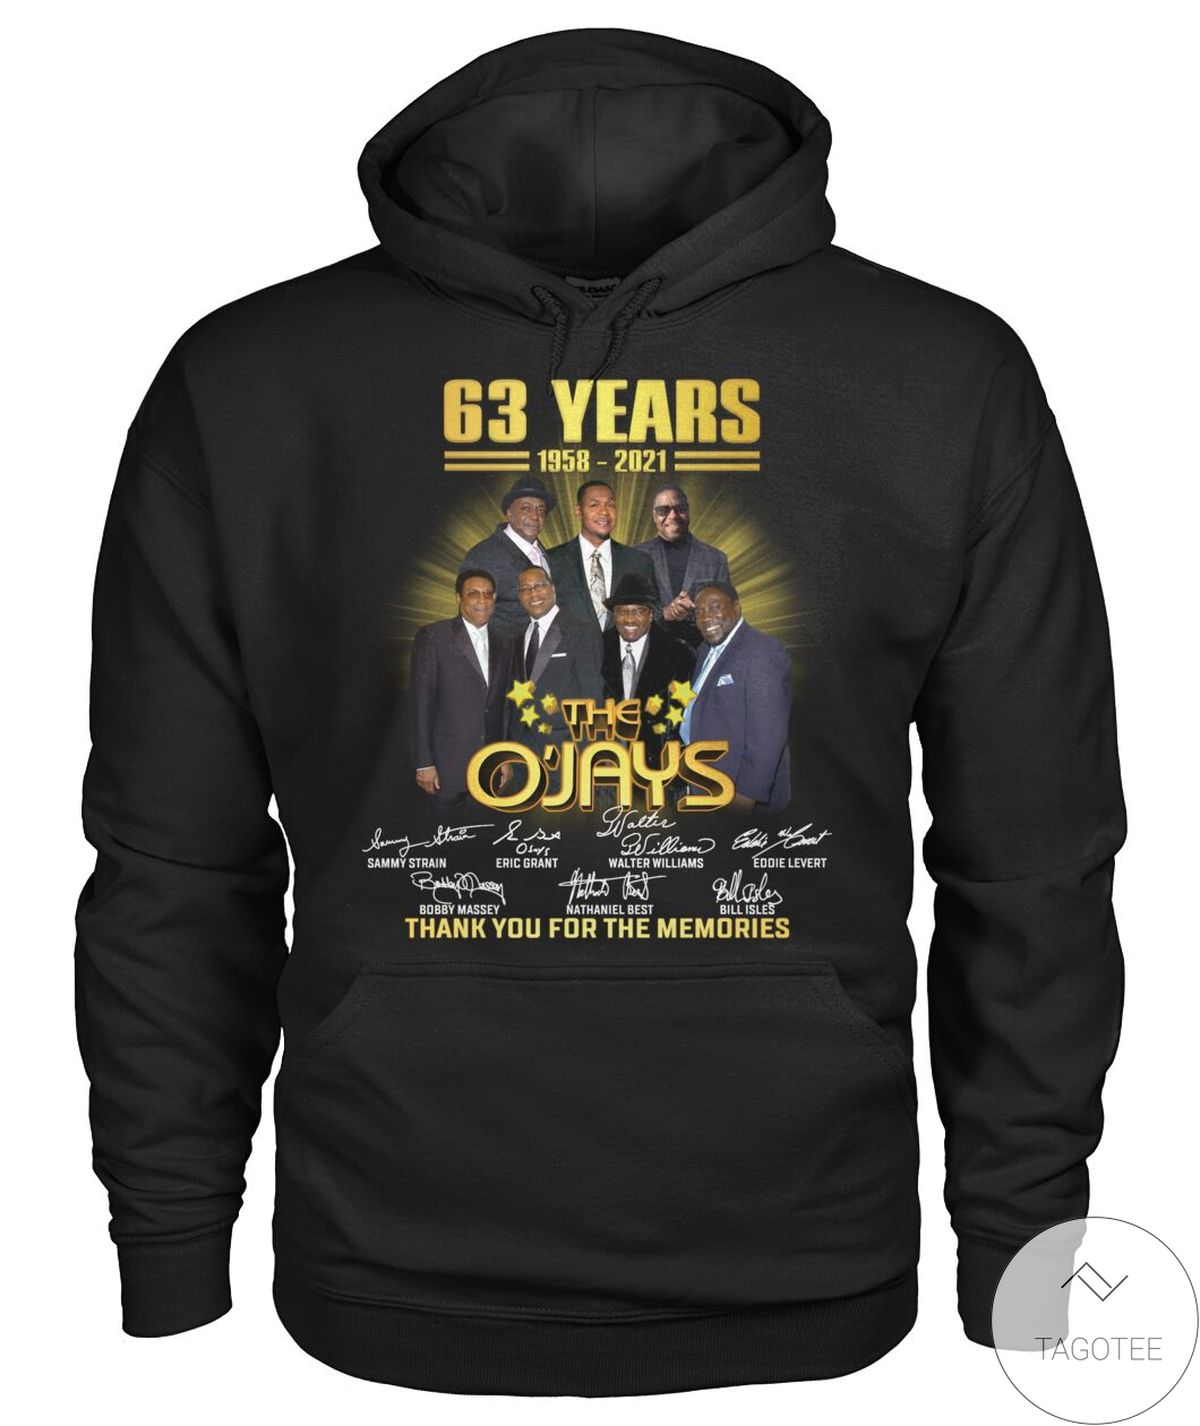 Official The O'jays 63 Years Anniversary 1958 2021 Shirt, hoodie, tank top